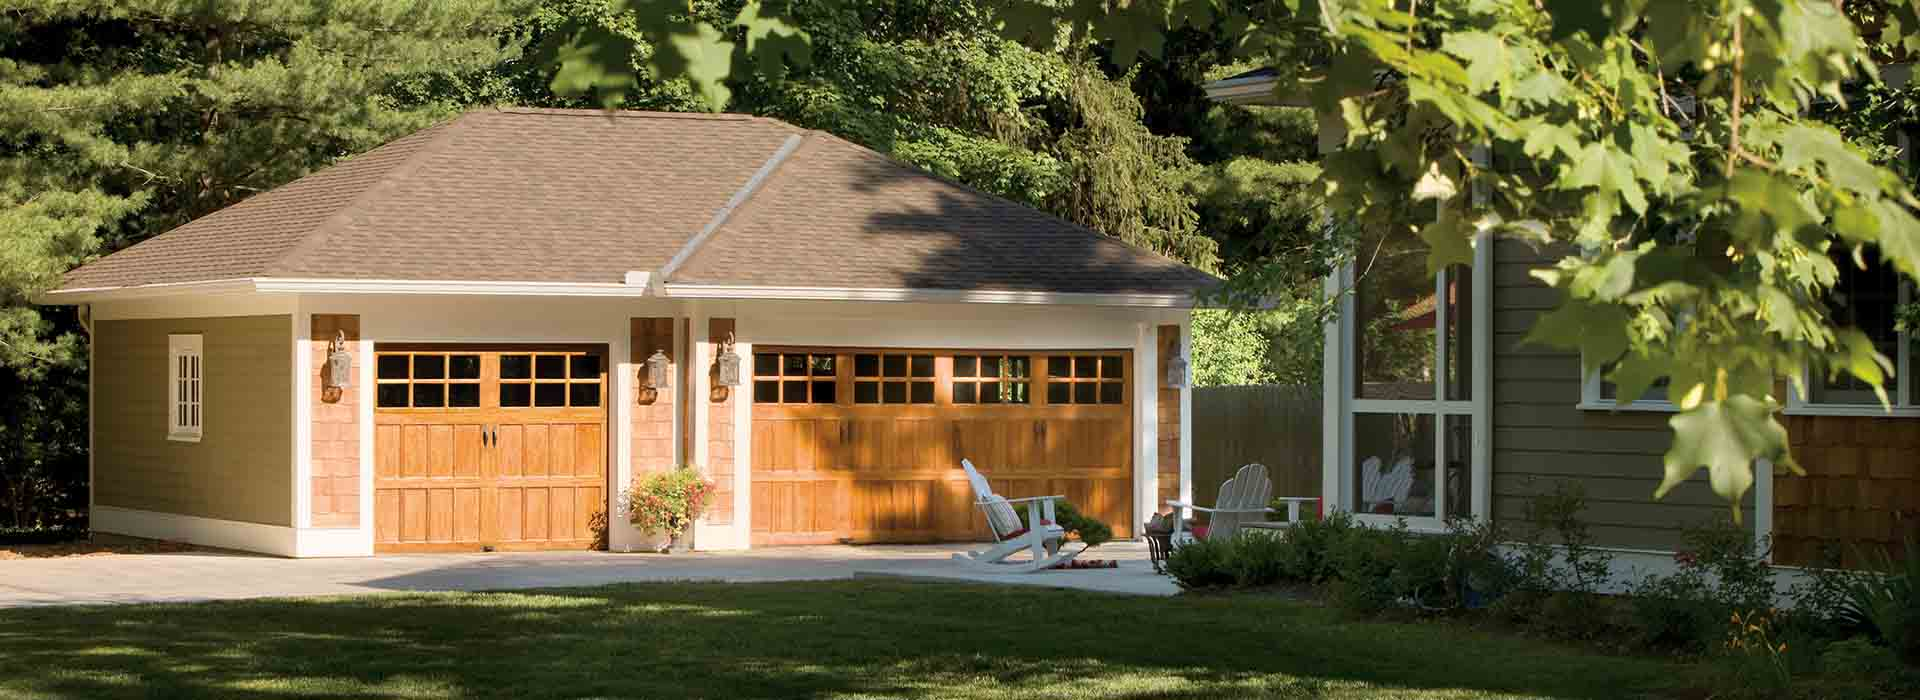 Garage Door Installation in Edmond, OKC, Oklahoma City, Piedmont OK